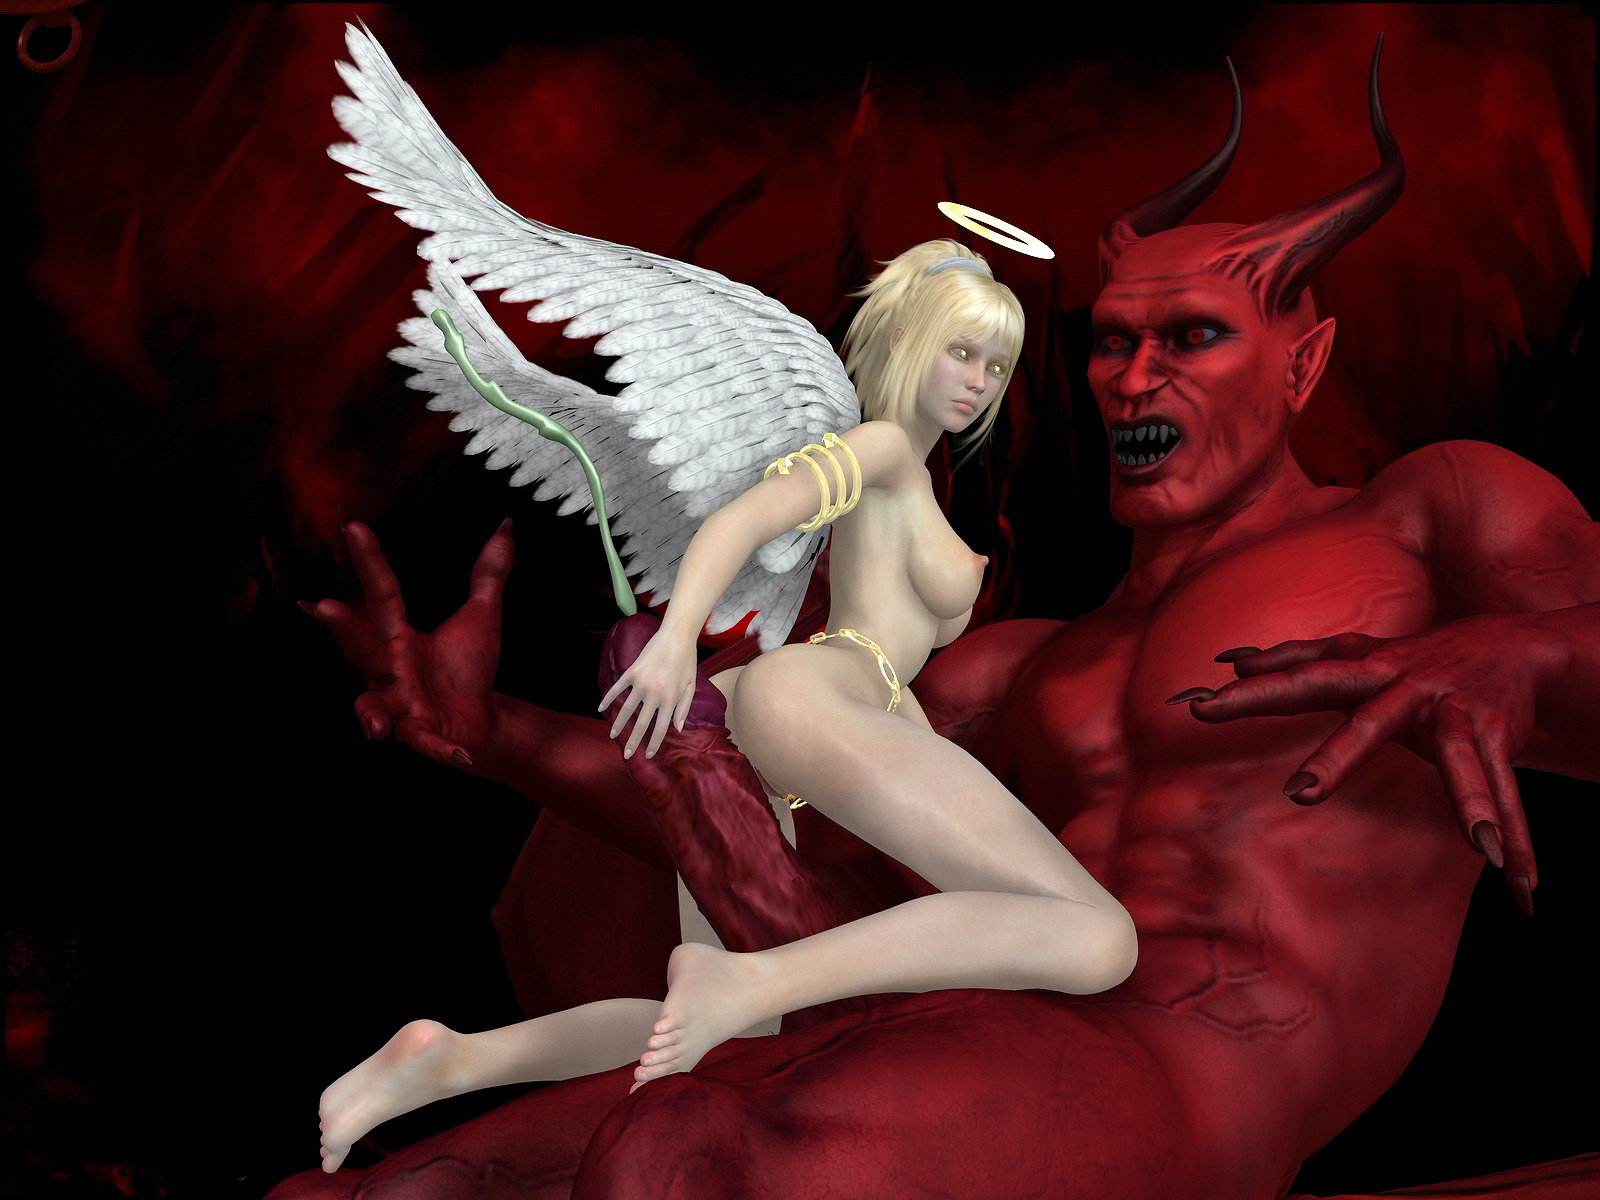 Angel demon sex pics erotic movie